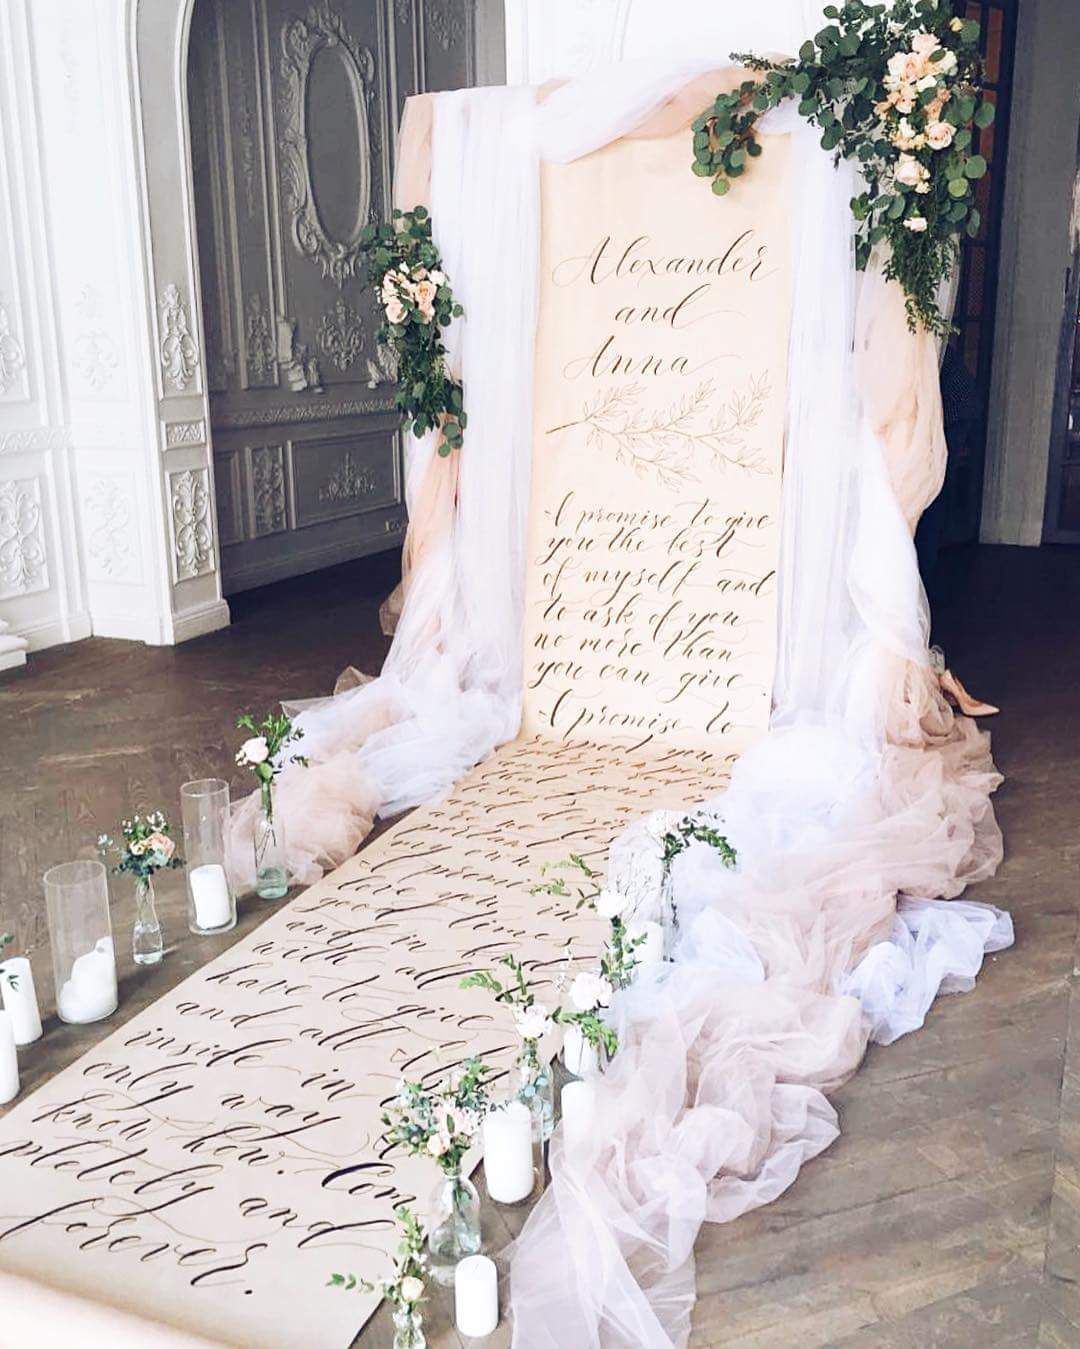 Magical Wedding Backdrop Ideas: Beautiful Scroll Style Ceremony Backdrop.